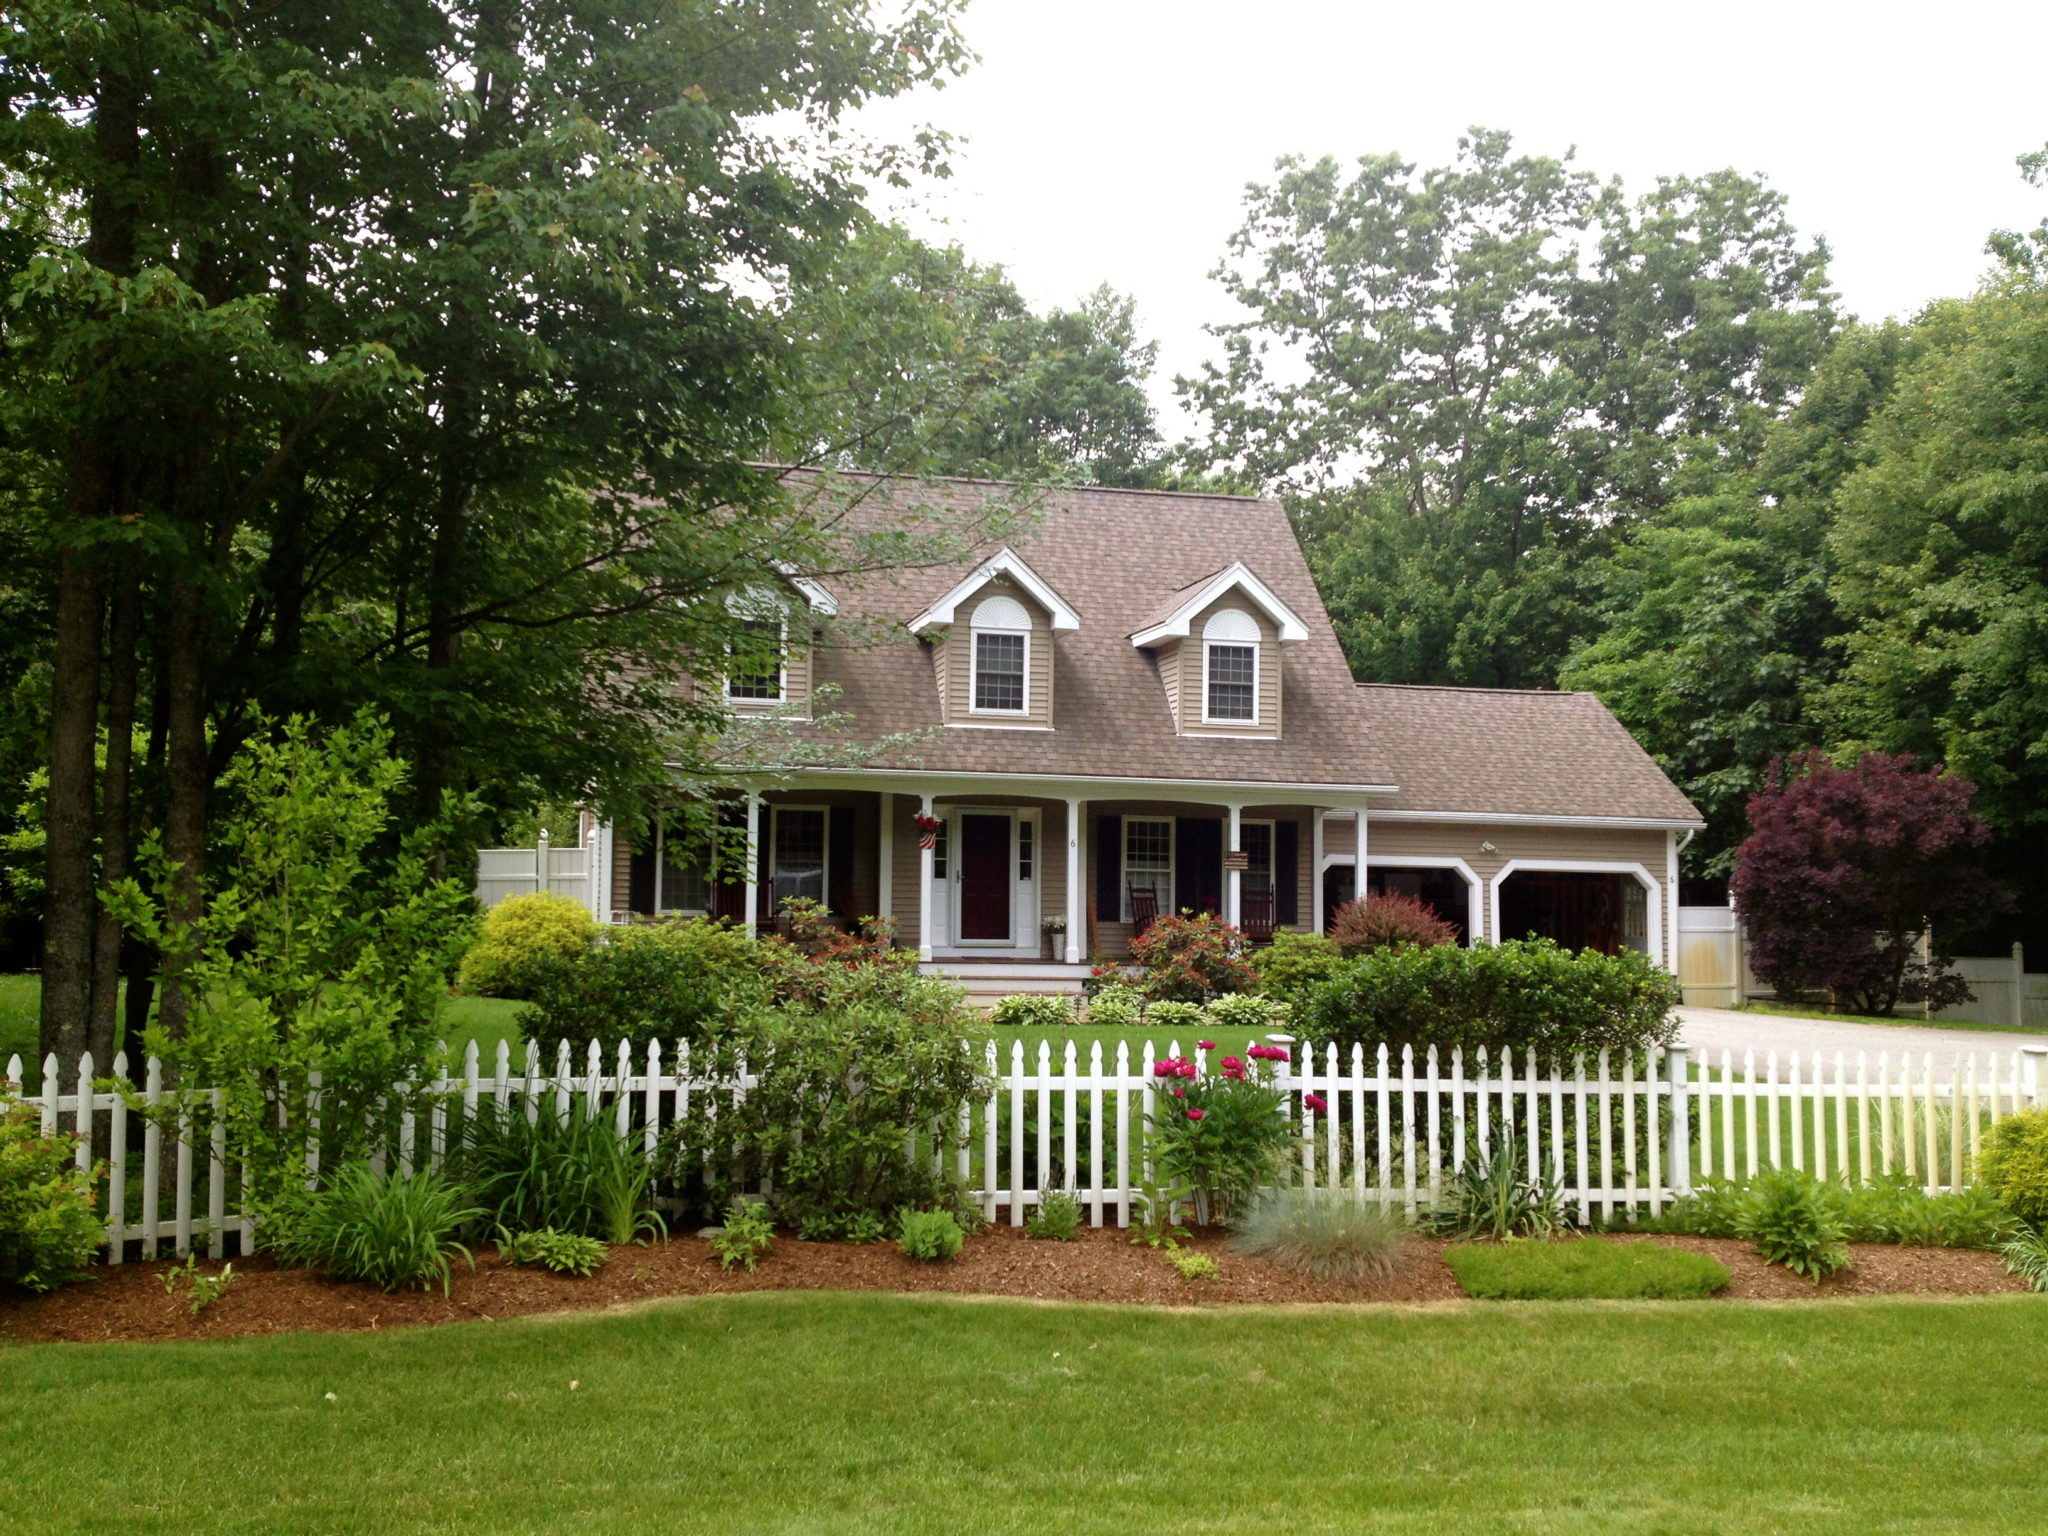 The-classic-picket-fence-gives-the-house-a-domestic-feeling